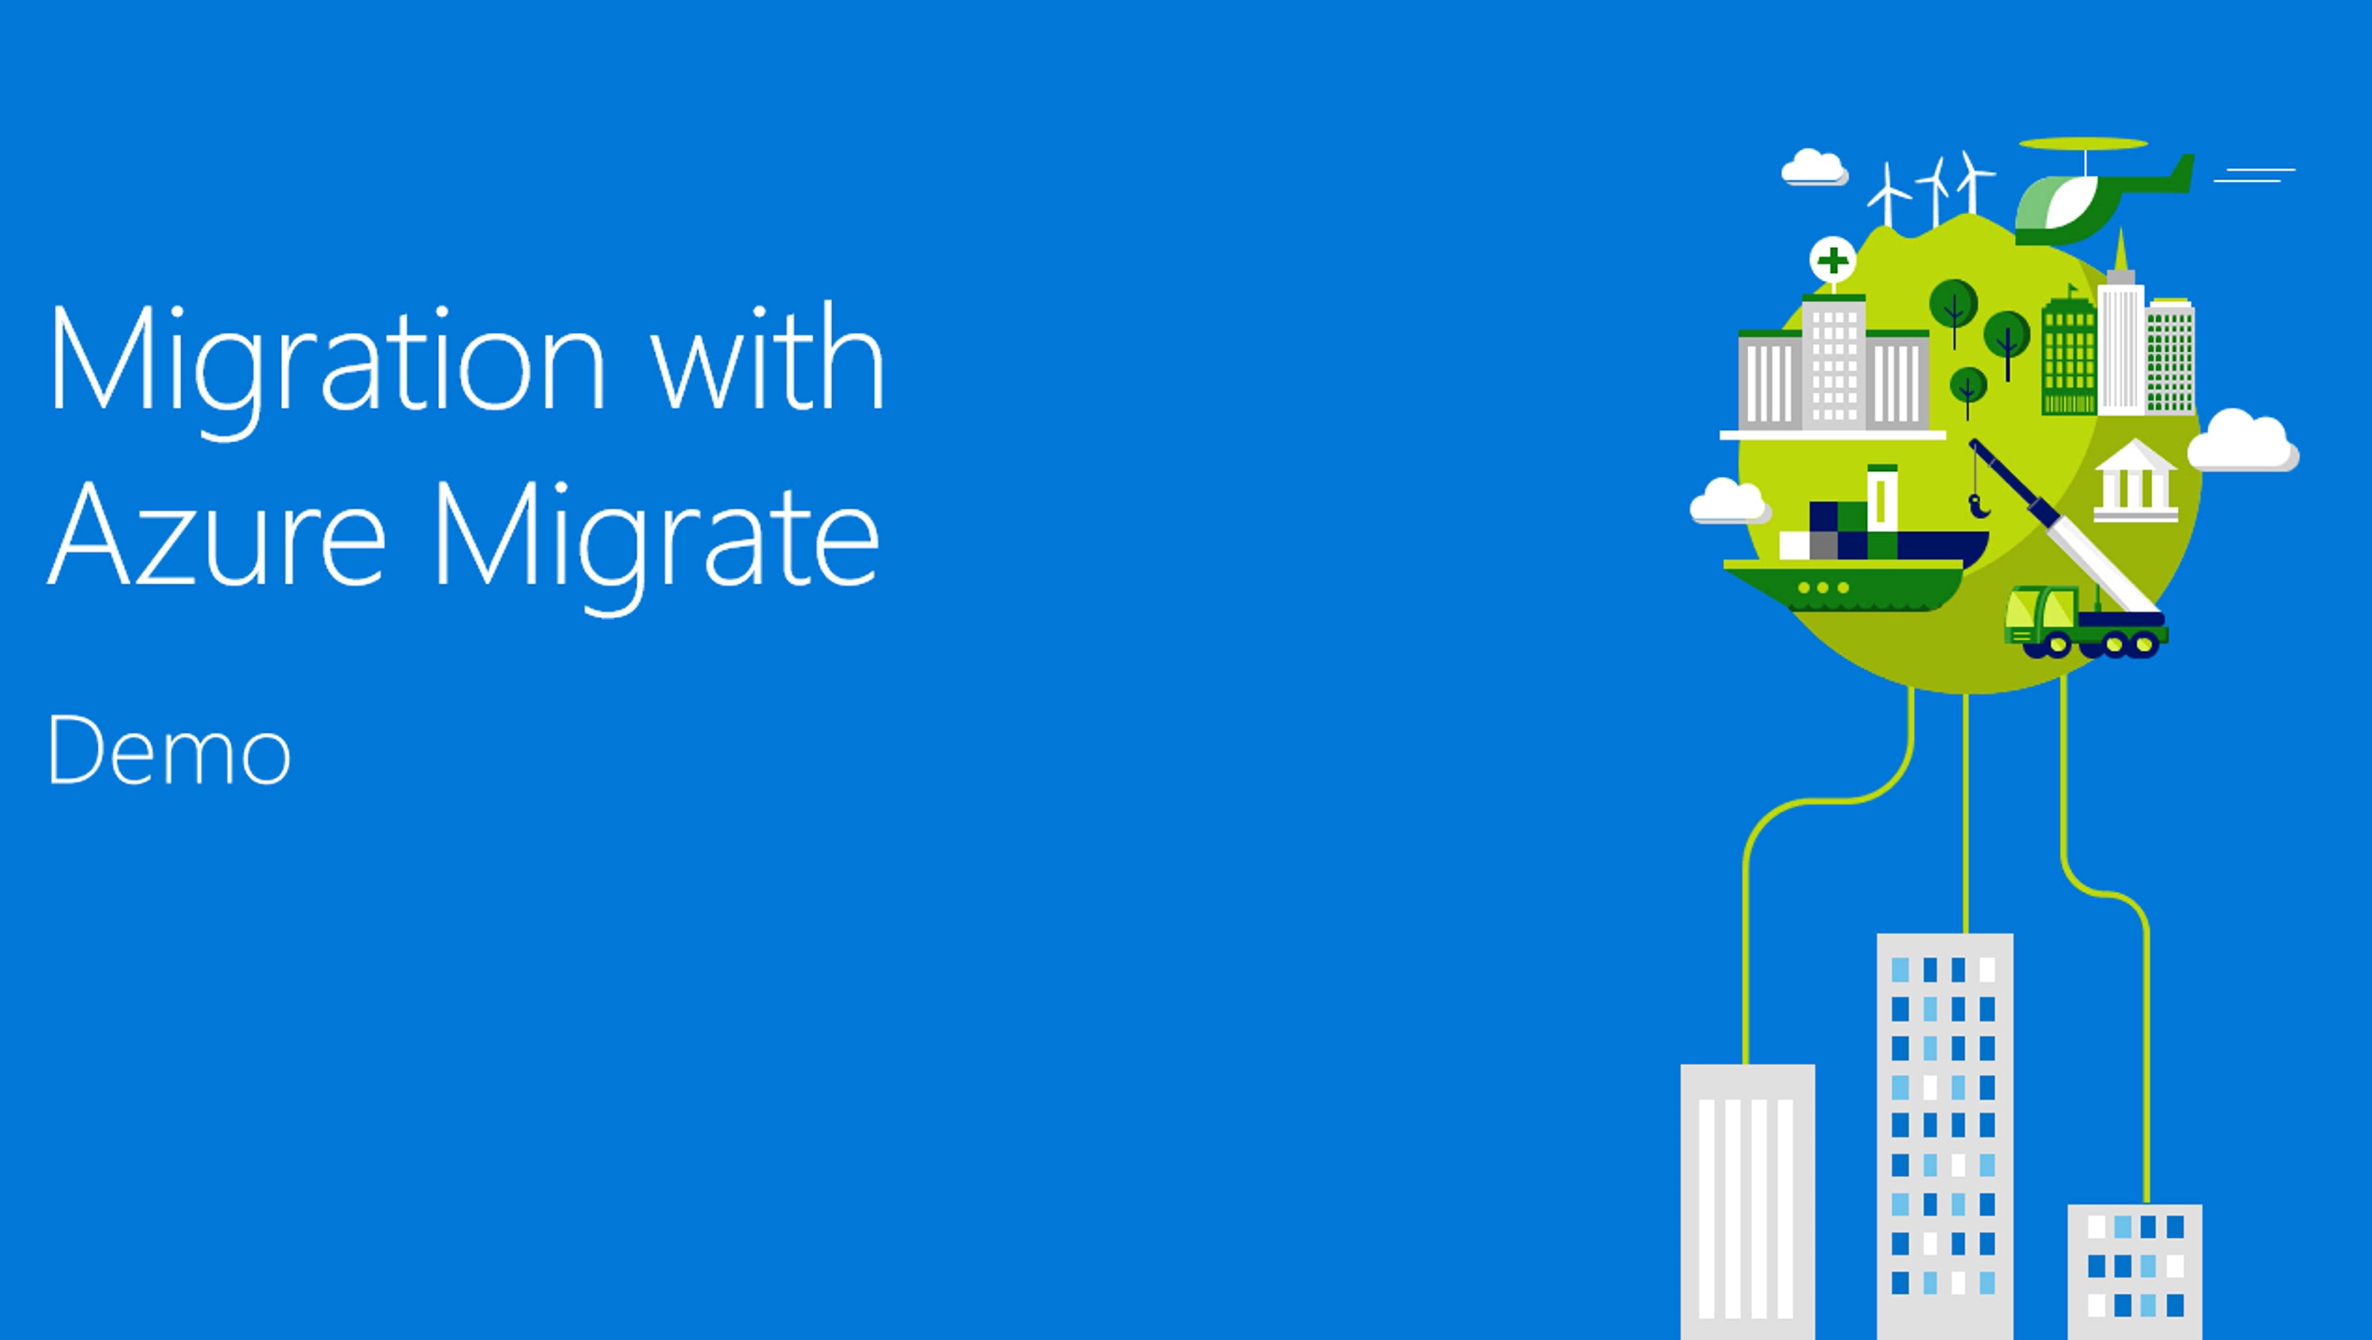 Migration with Azure Migrate